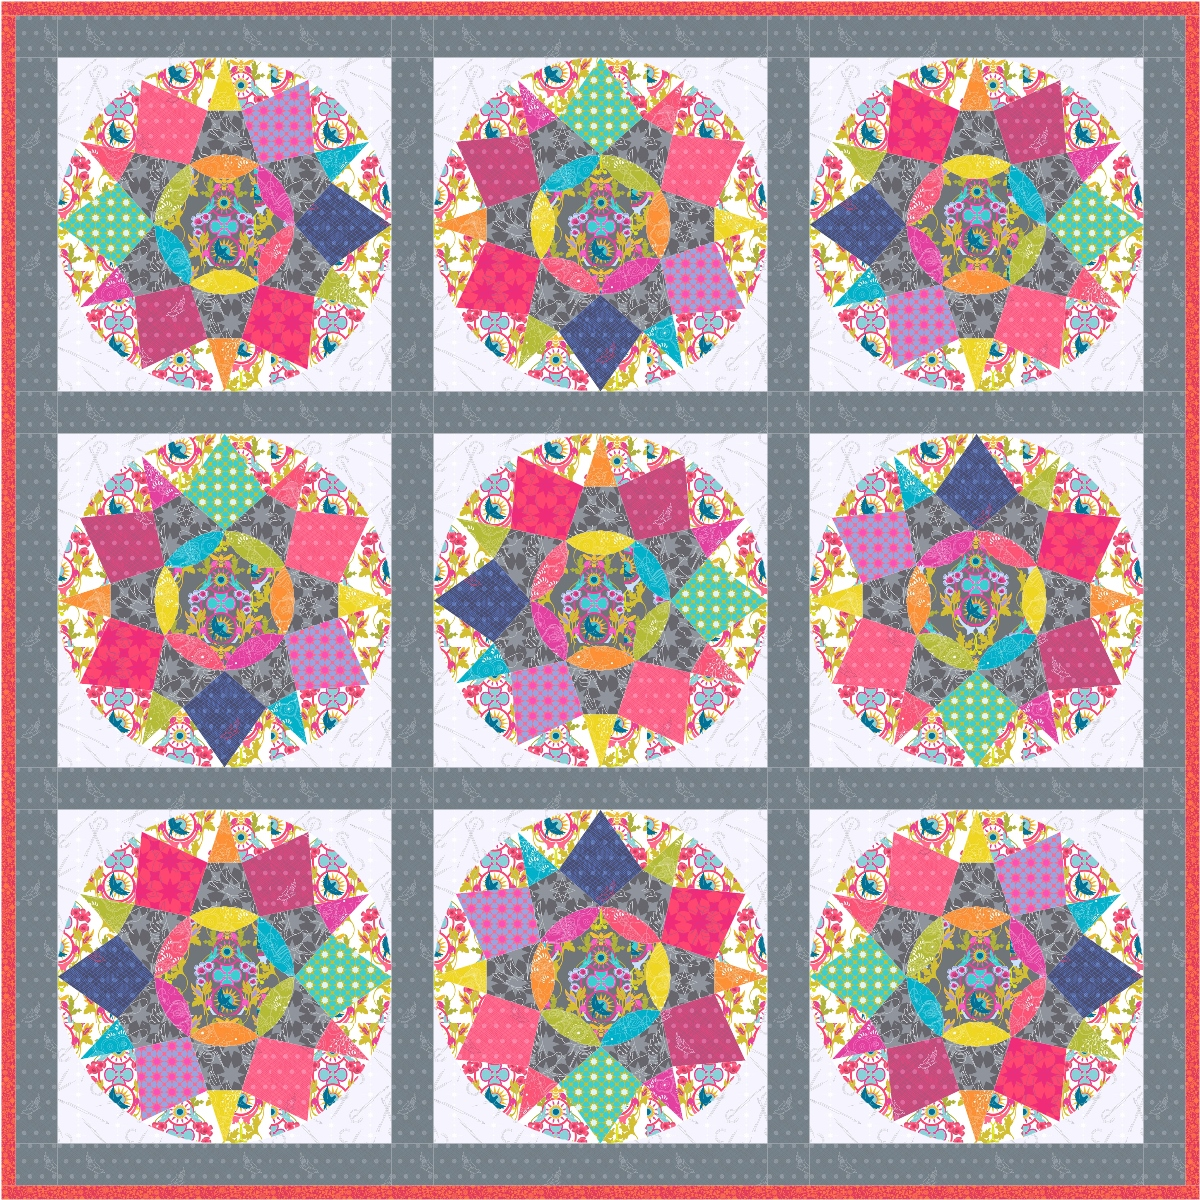 N- Graffiti Pattern & Complete Piece Pack Combo